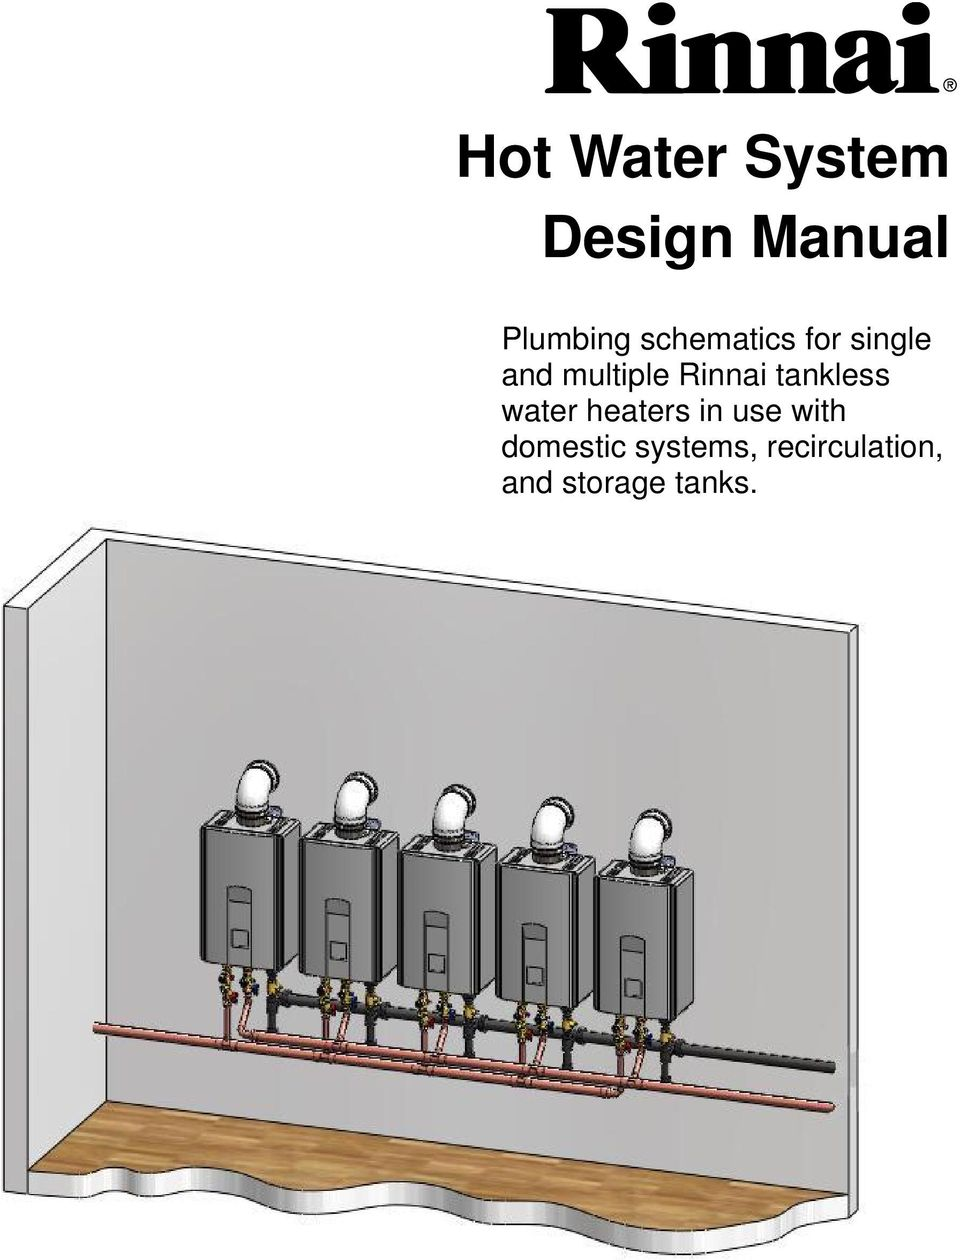 tankless water heaters in use with